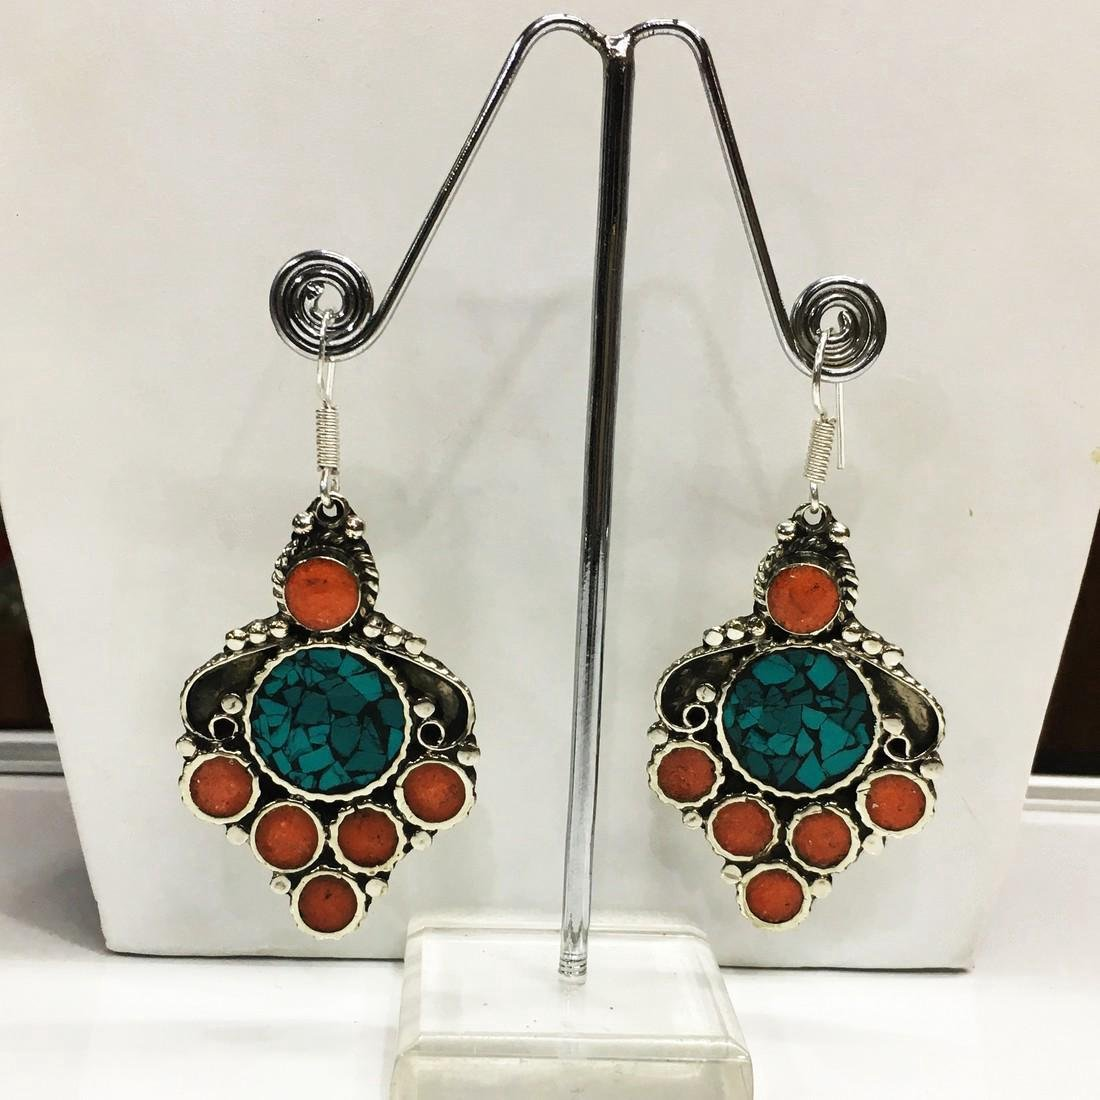 Vintage Ethnic Tibetan Silver Turquoise Coral Earrings - 2